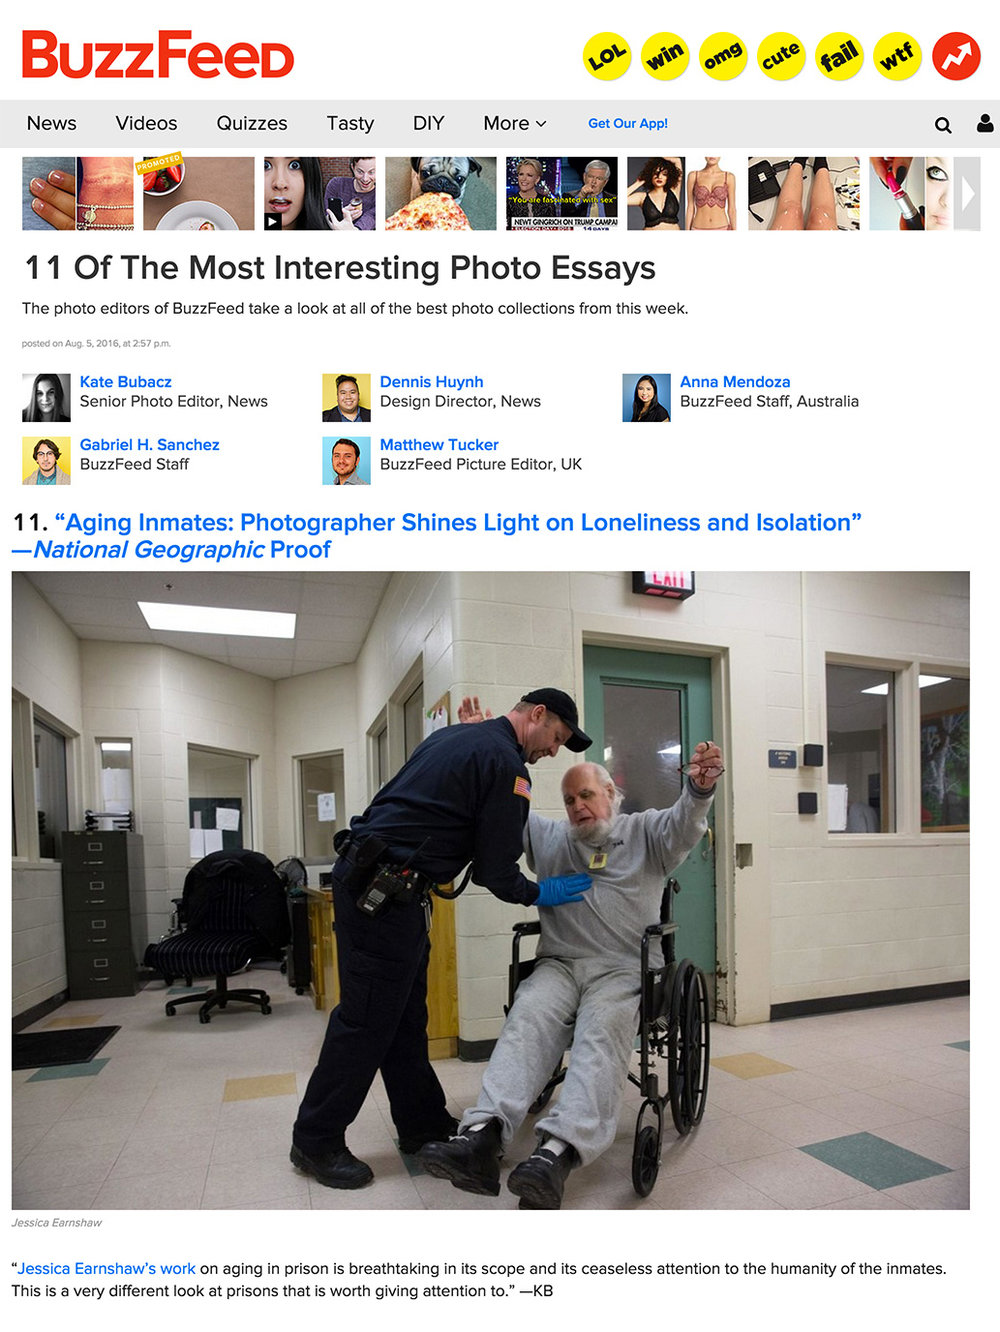 BuzzFeed (USA),  11 Of The Most Interesting Photo Essays, August 5, 2016.